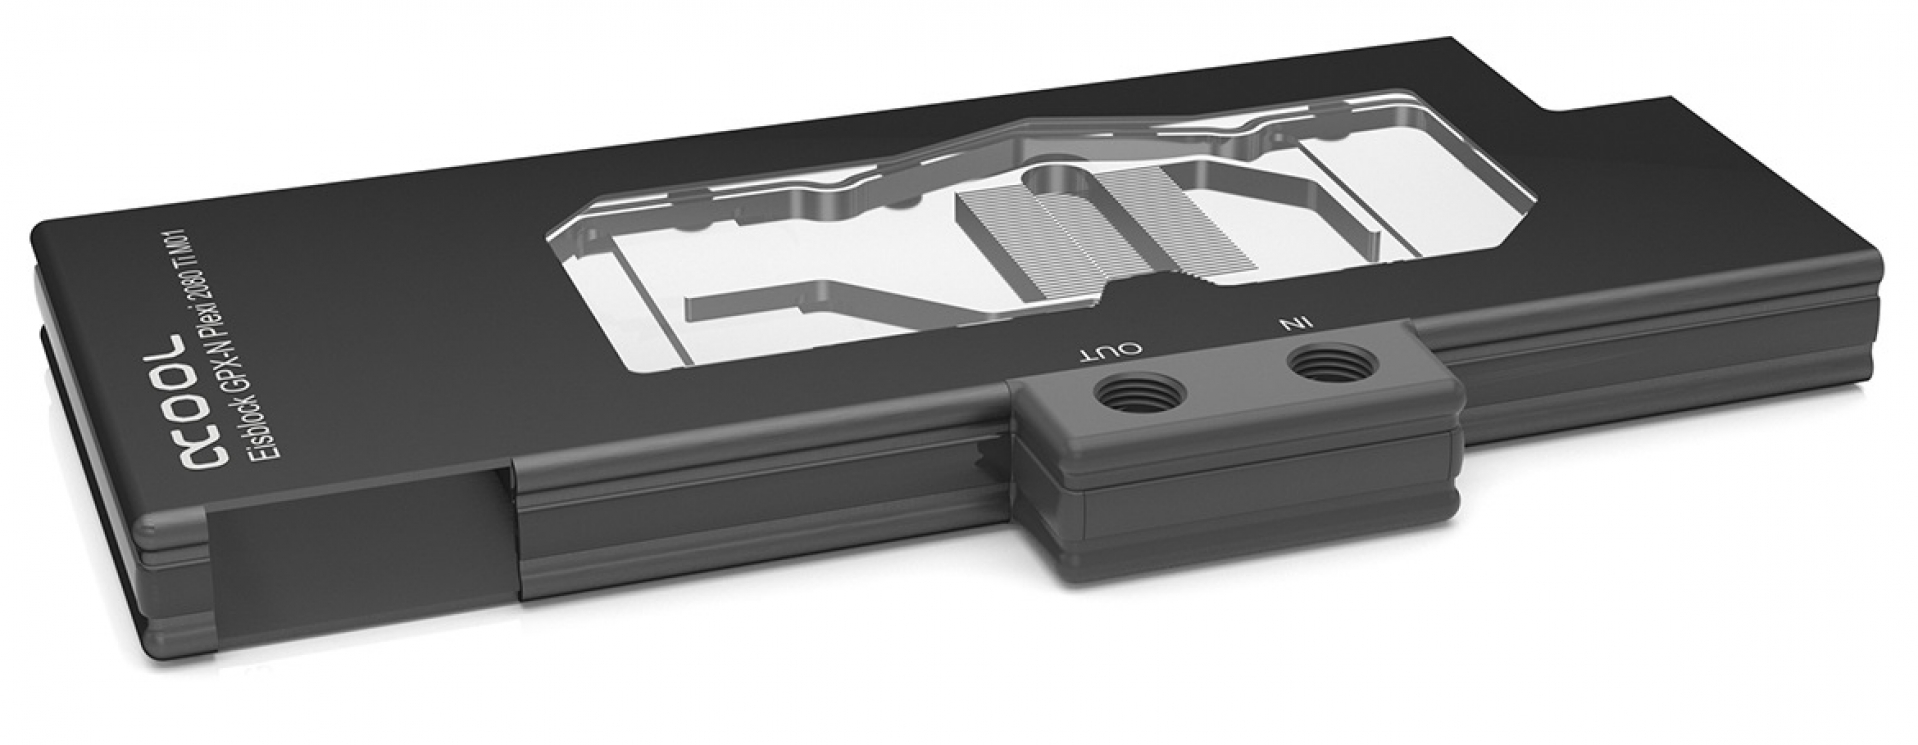 Alphacool launches their RTX 2080 and RTX 2080 Ti water